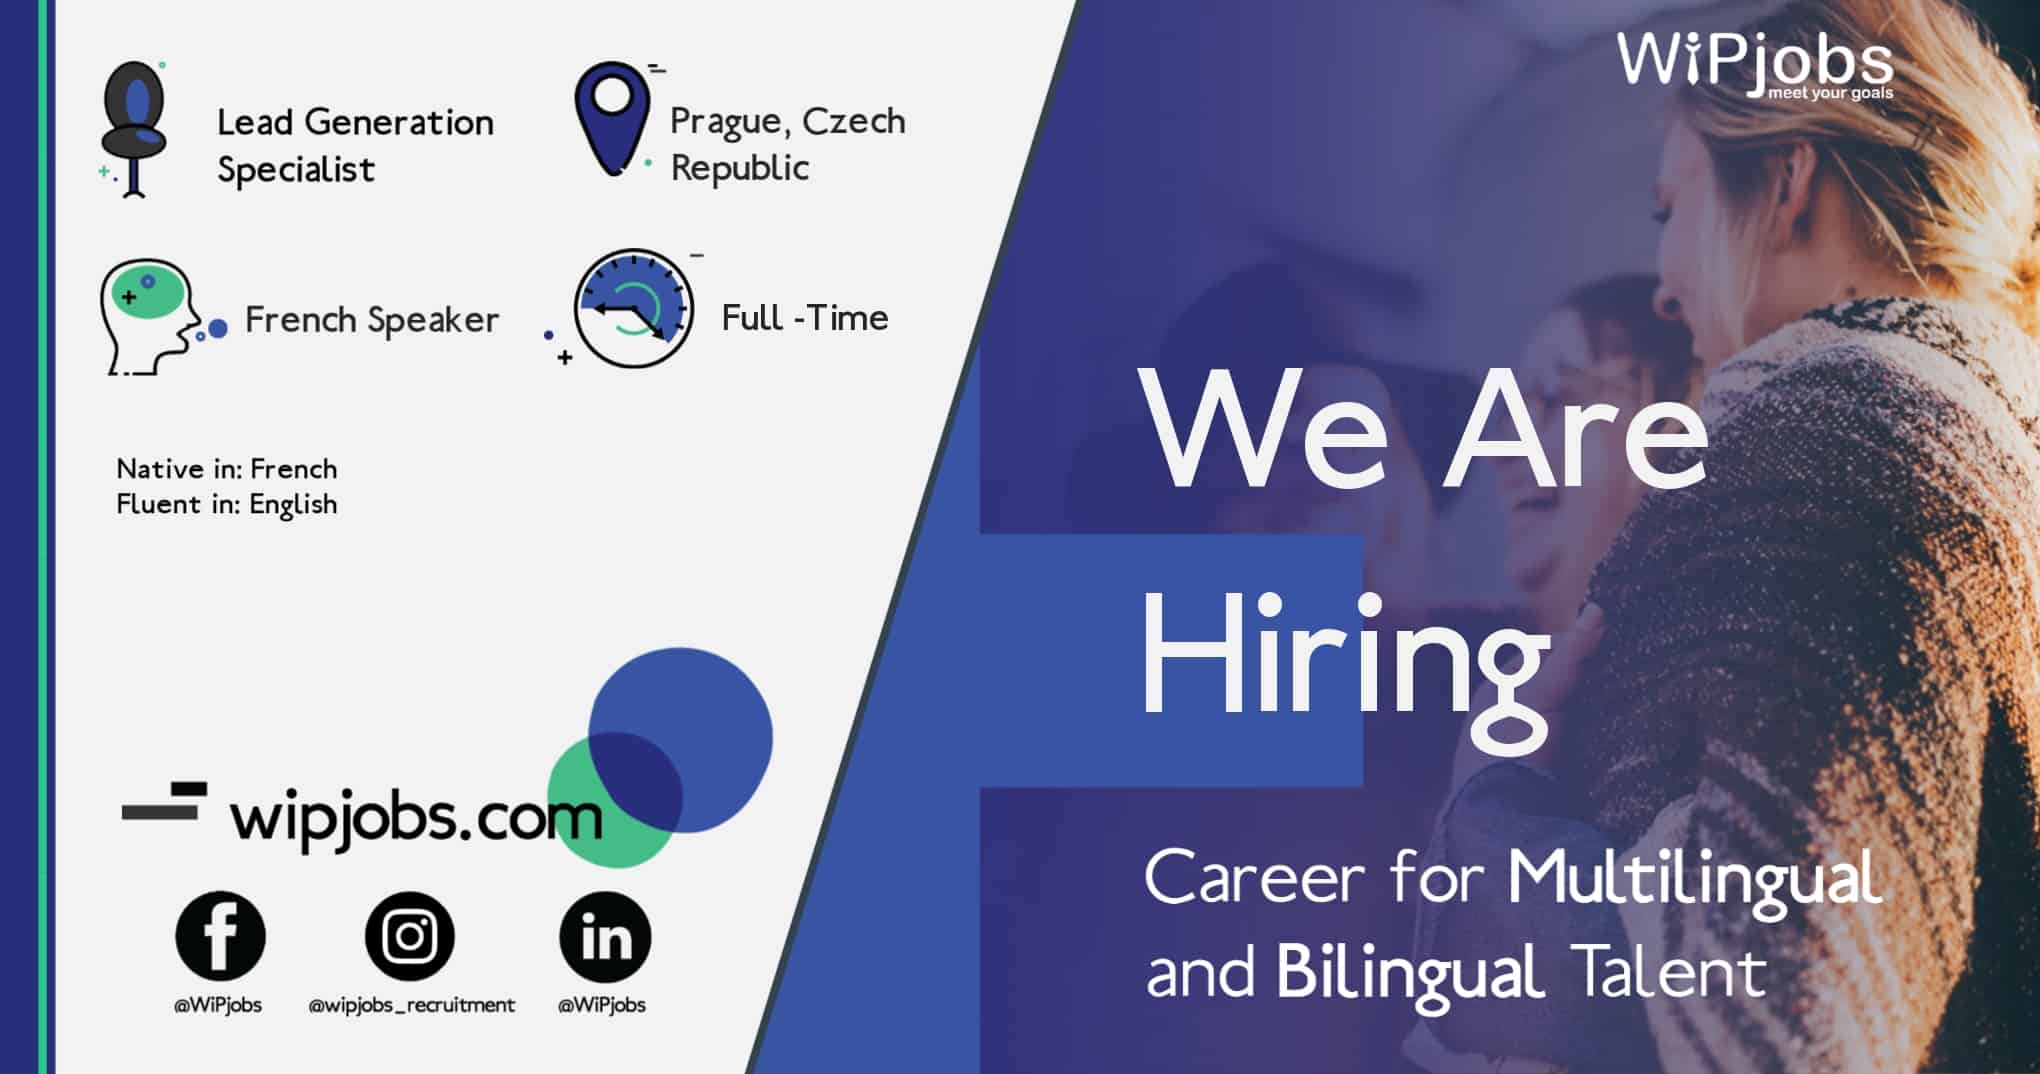 Lead-Generation-Specialist-FRENCH-Speaker